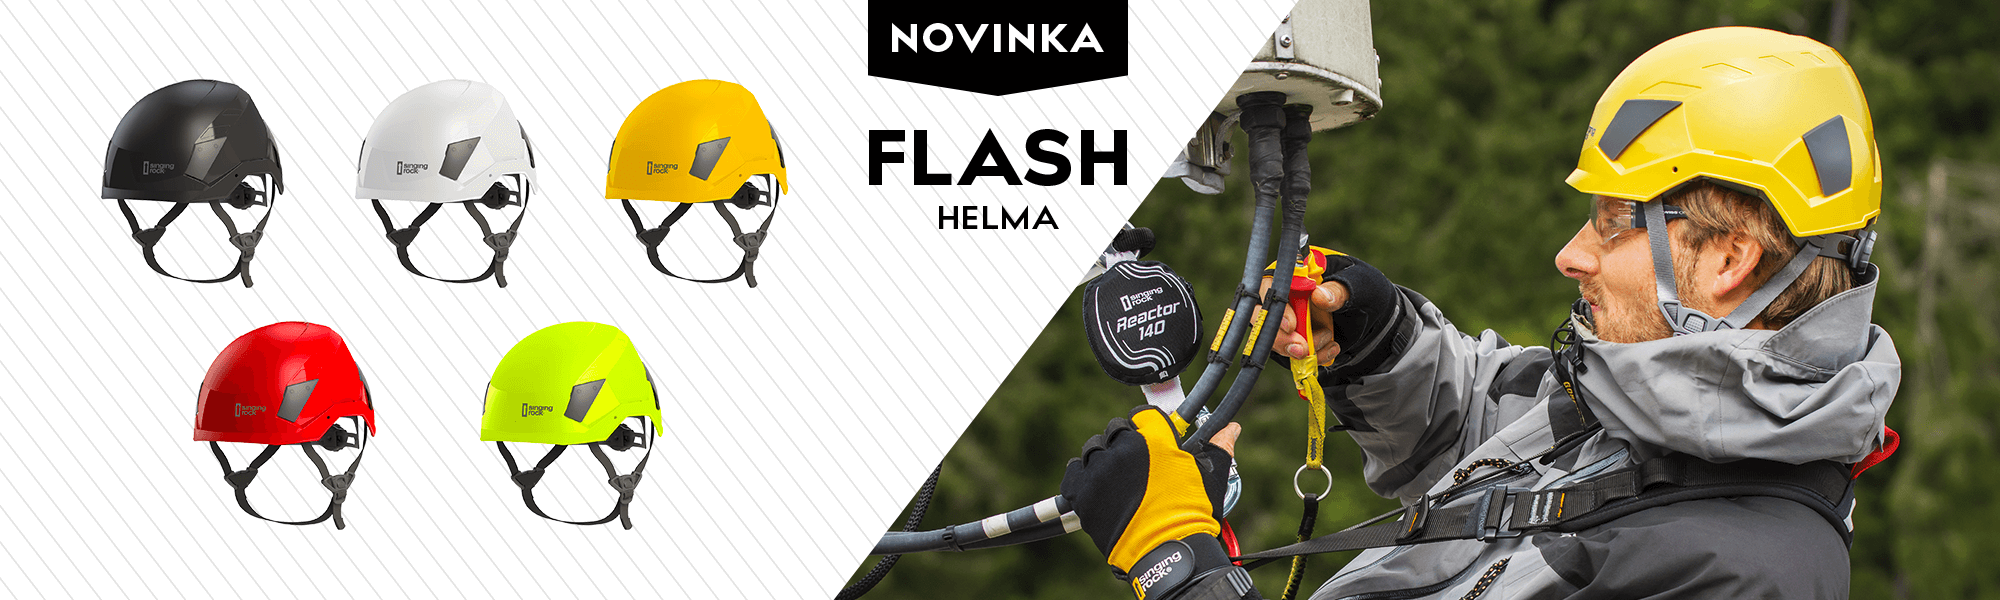 Flash helma